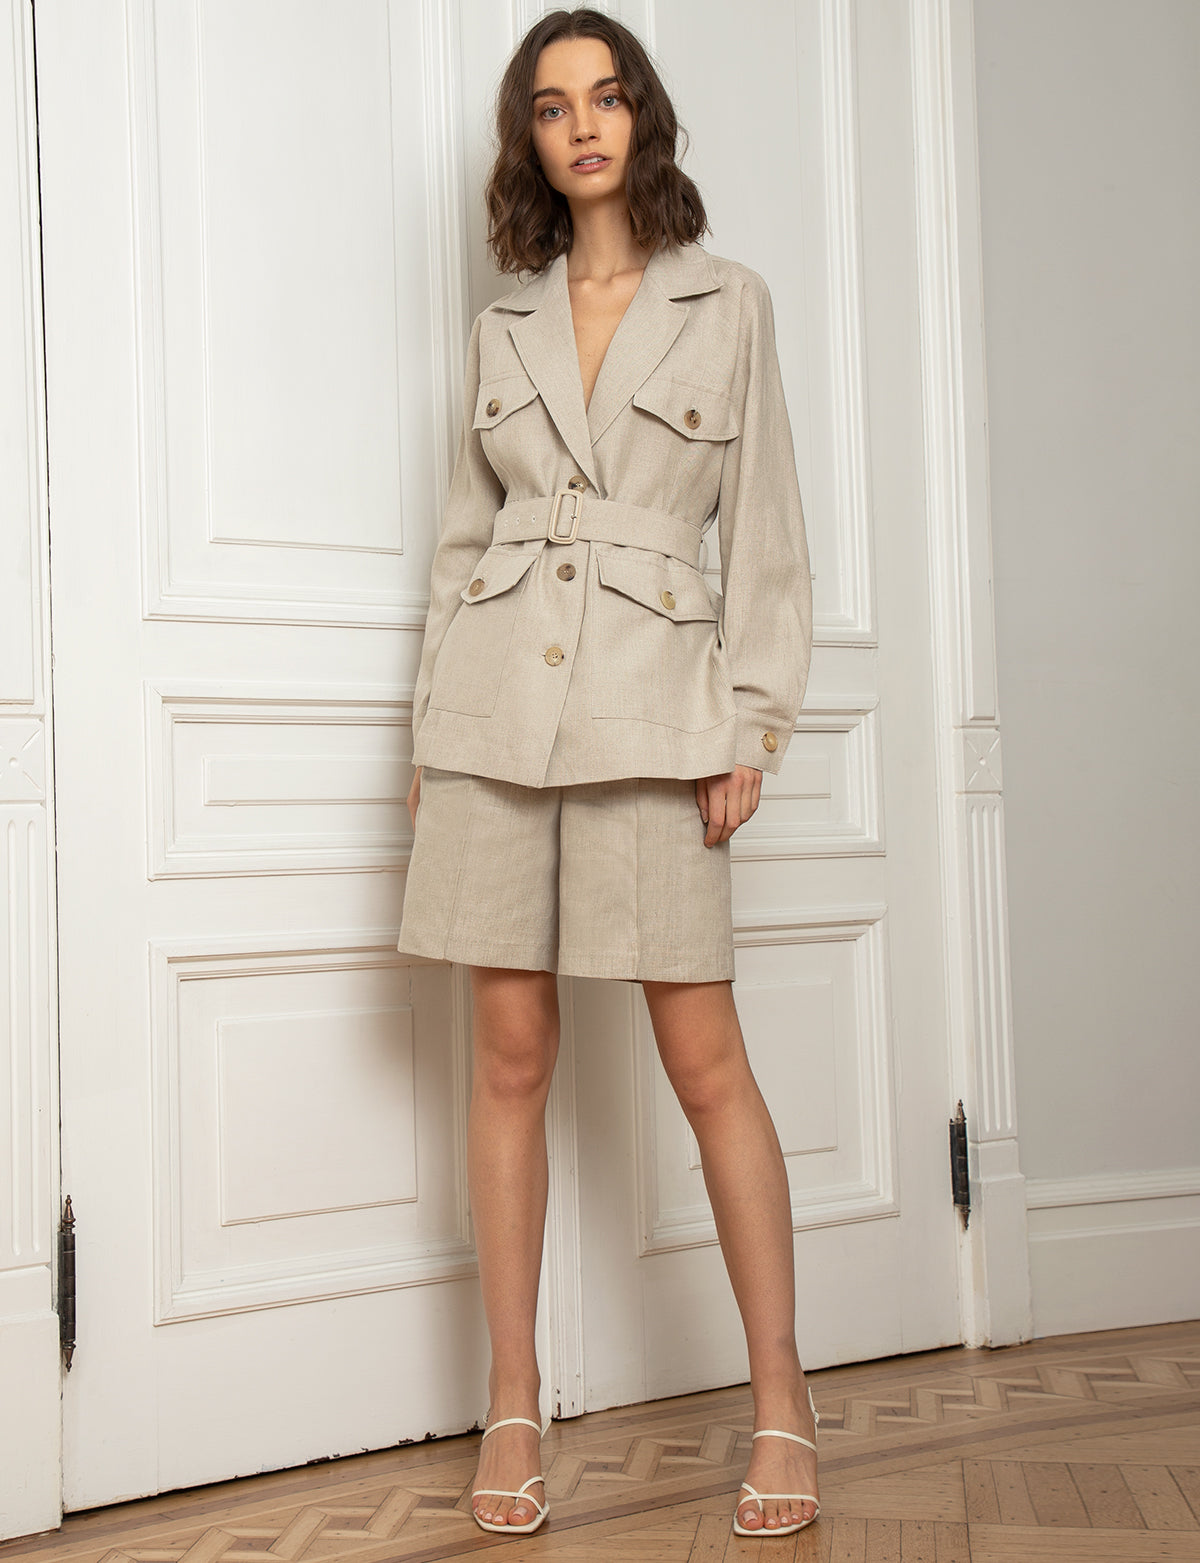 Khaki-colored belted safari jacket with matching shorts